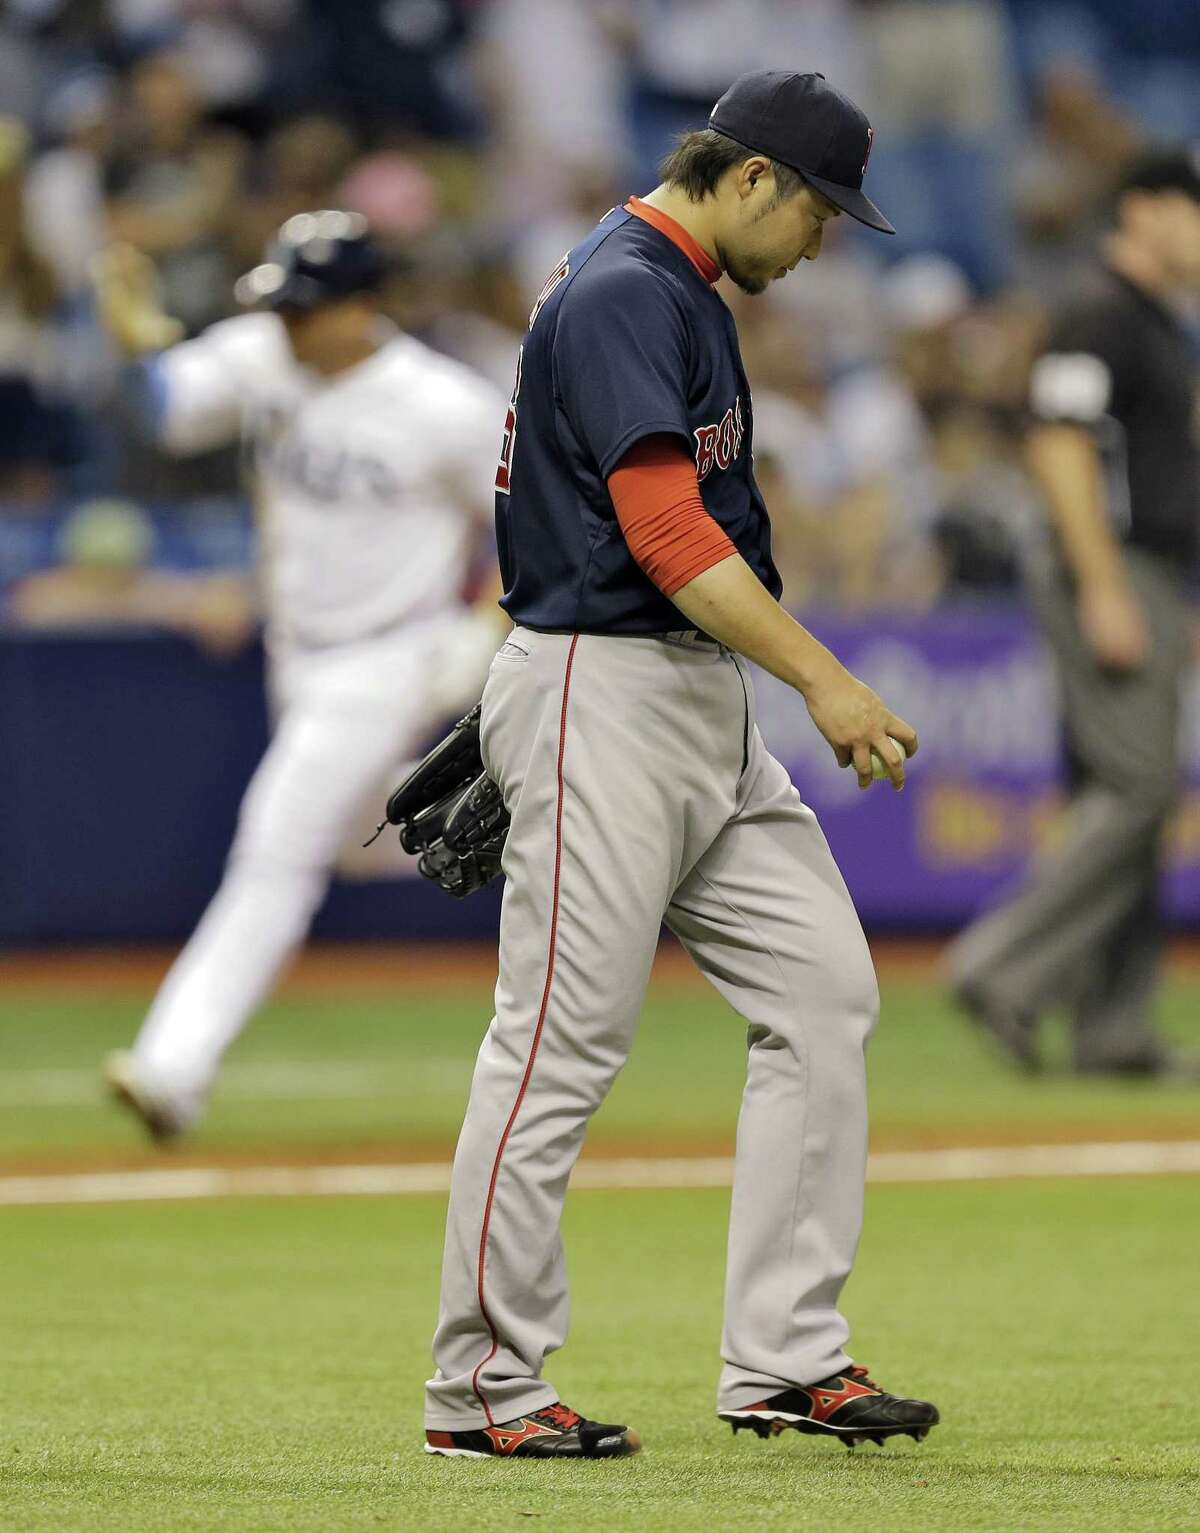 Boston Red Sox reliever Junichi Tazawa walks back to the mound as the Tampa Bay Rays' Asdrubal Cabrera runs around the bases after hitting a two-run home run during the eighth inning of Friday's game in St. Petersburg, Fla.